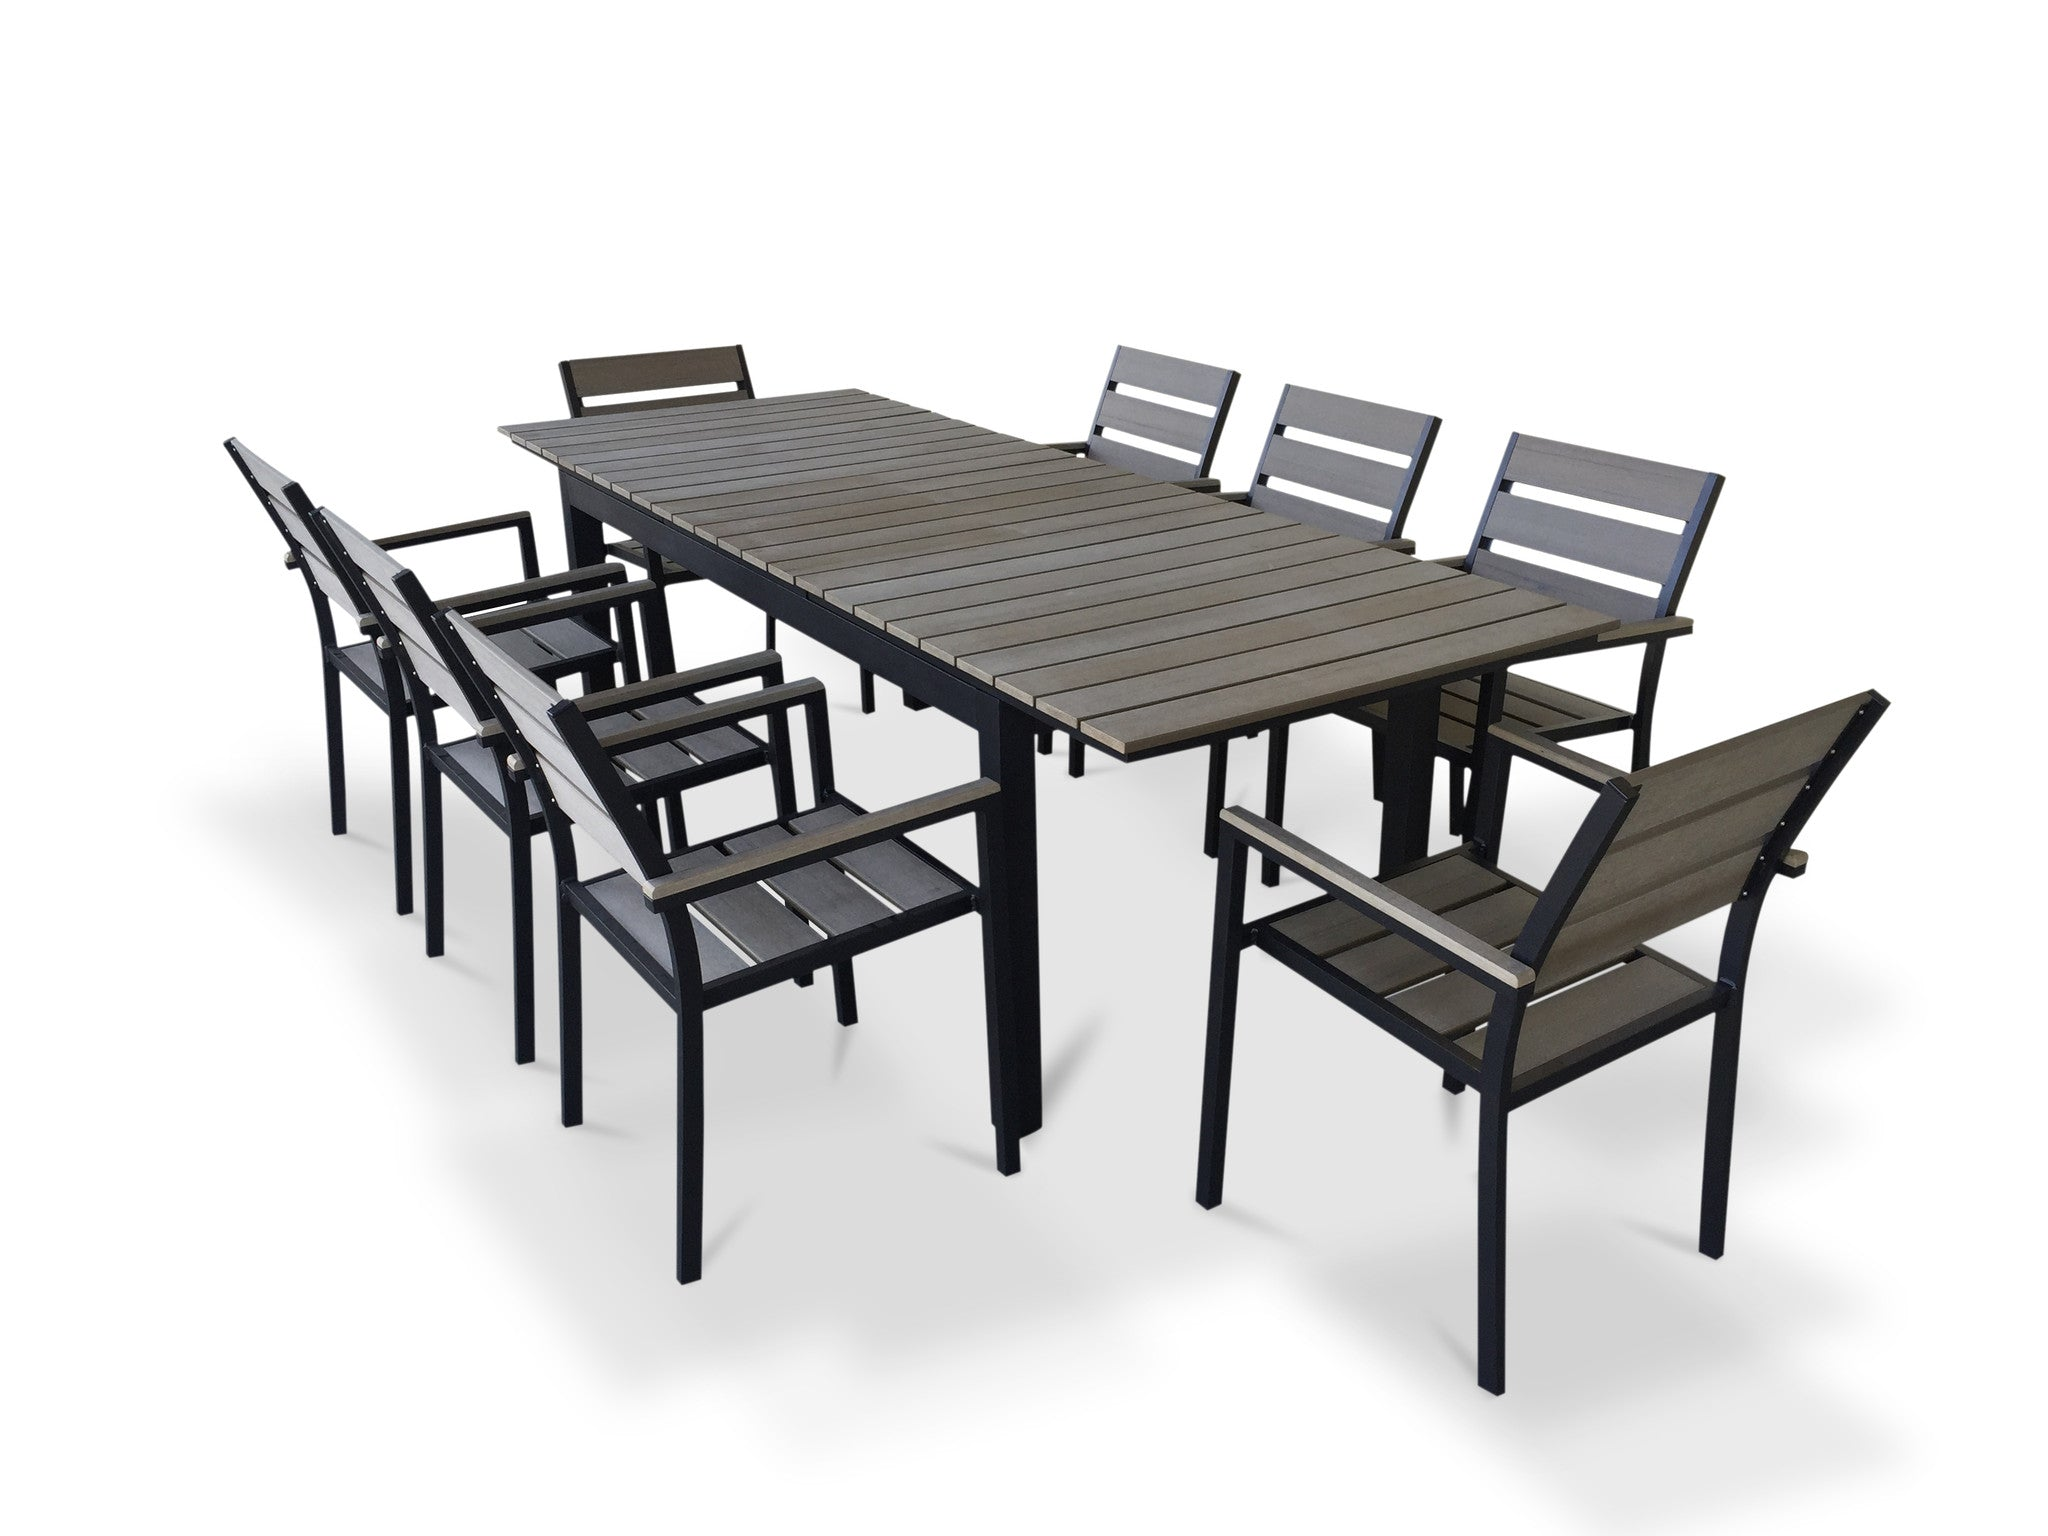 9 Piece Eco Wood Extendable Outdoor Patio Dining Set   Rustic Gray Part 61